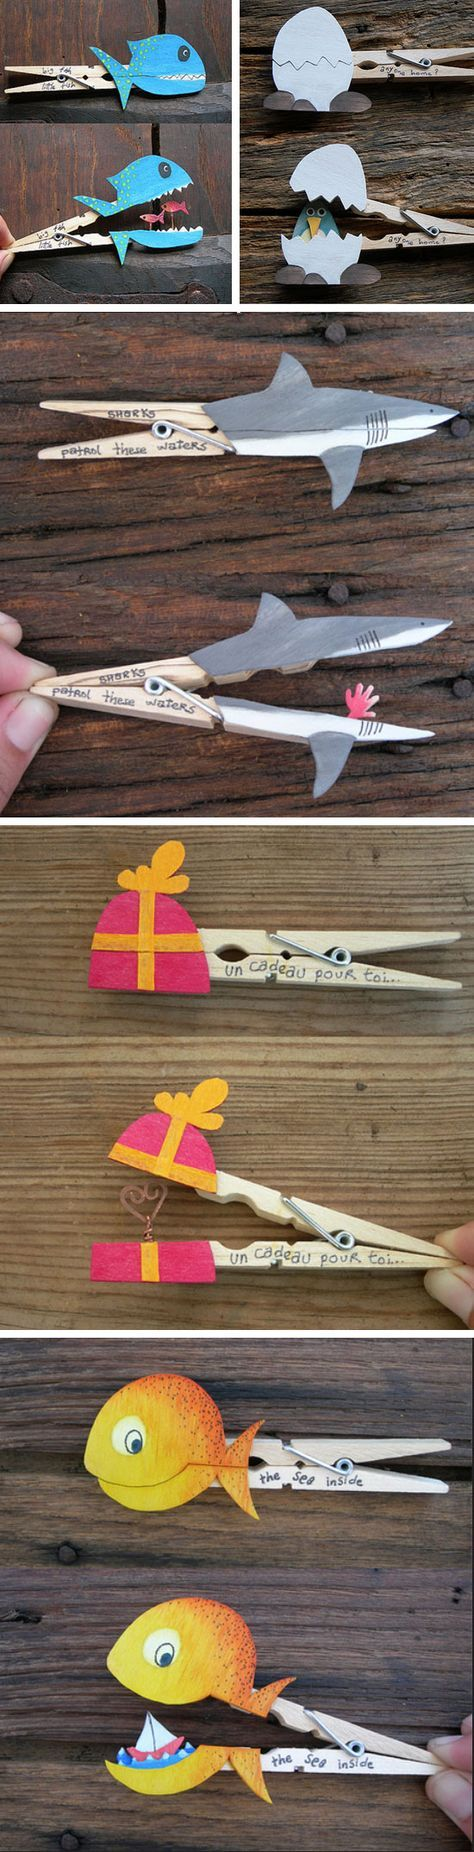 Clothes Peg Crafts | 18 DIY Summer Art Projects for Kids to Make | Easy Art